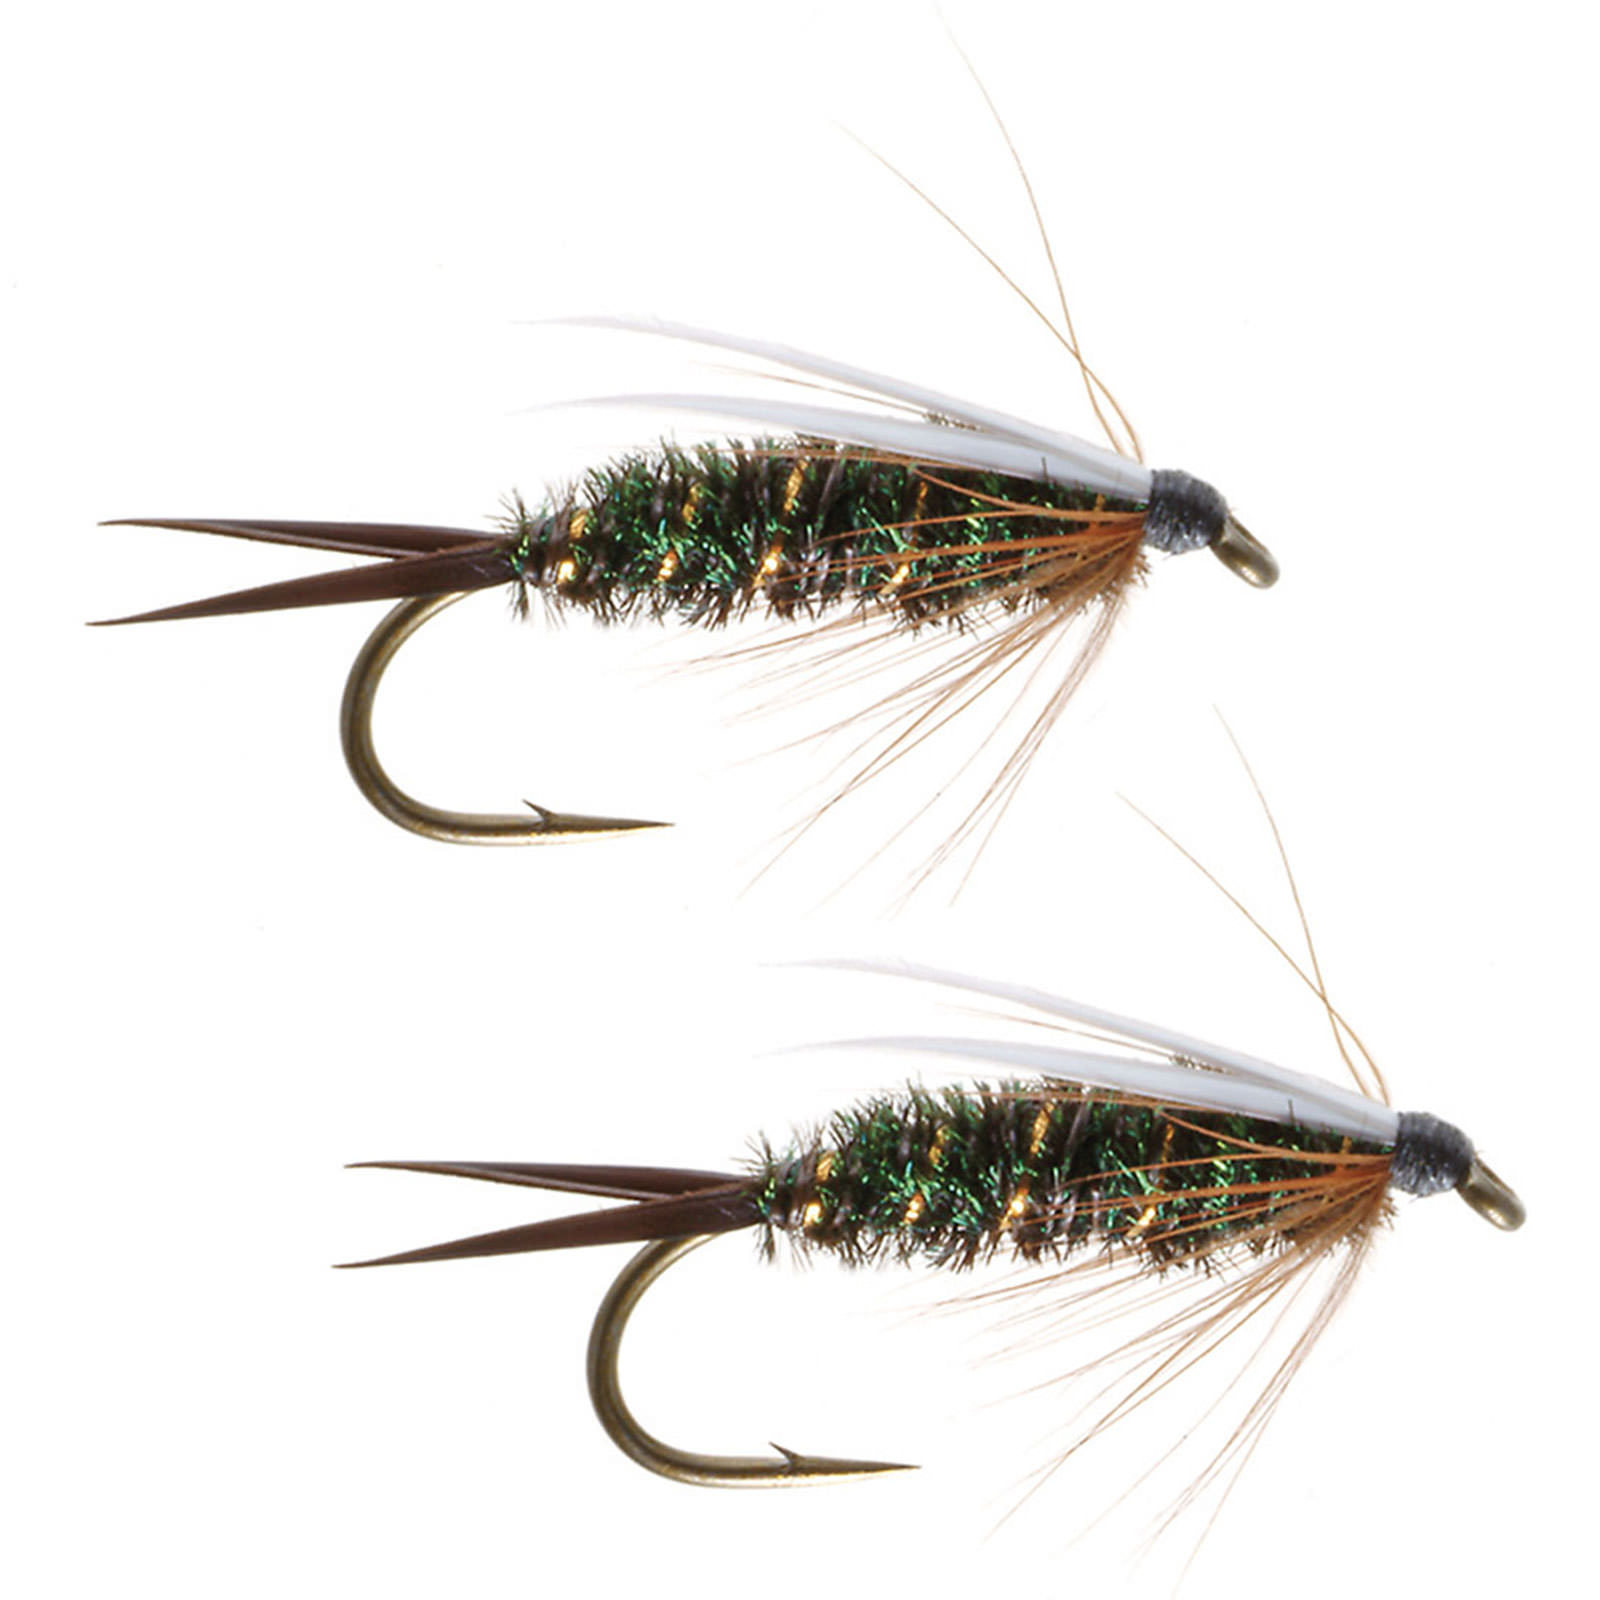 Umpqua prince nymph fly fishing nymphs wet flies multi for Wet fly fishing